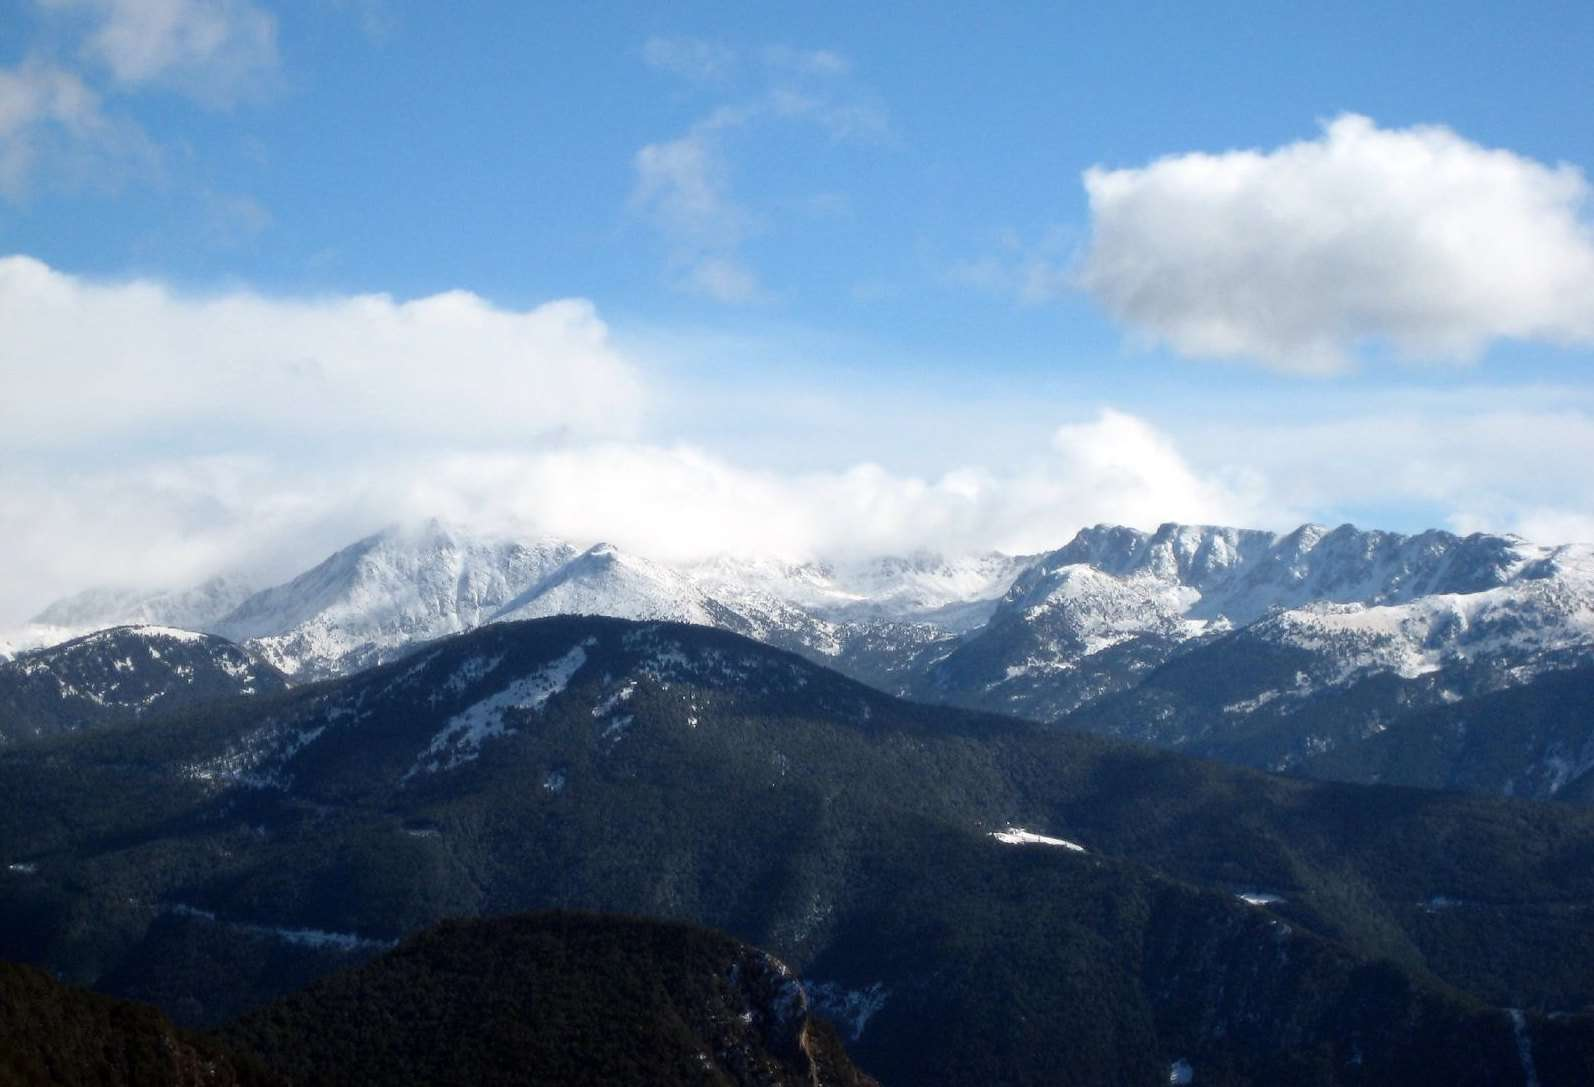 Blue skies with a few clouds hover above snow-capped mountains on the horizon